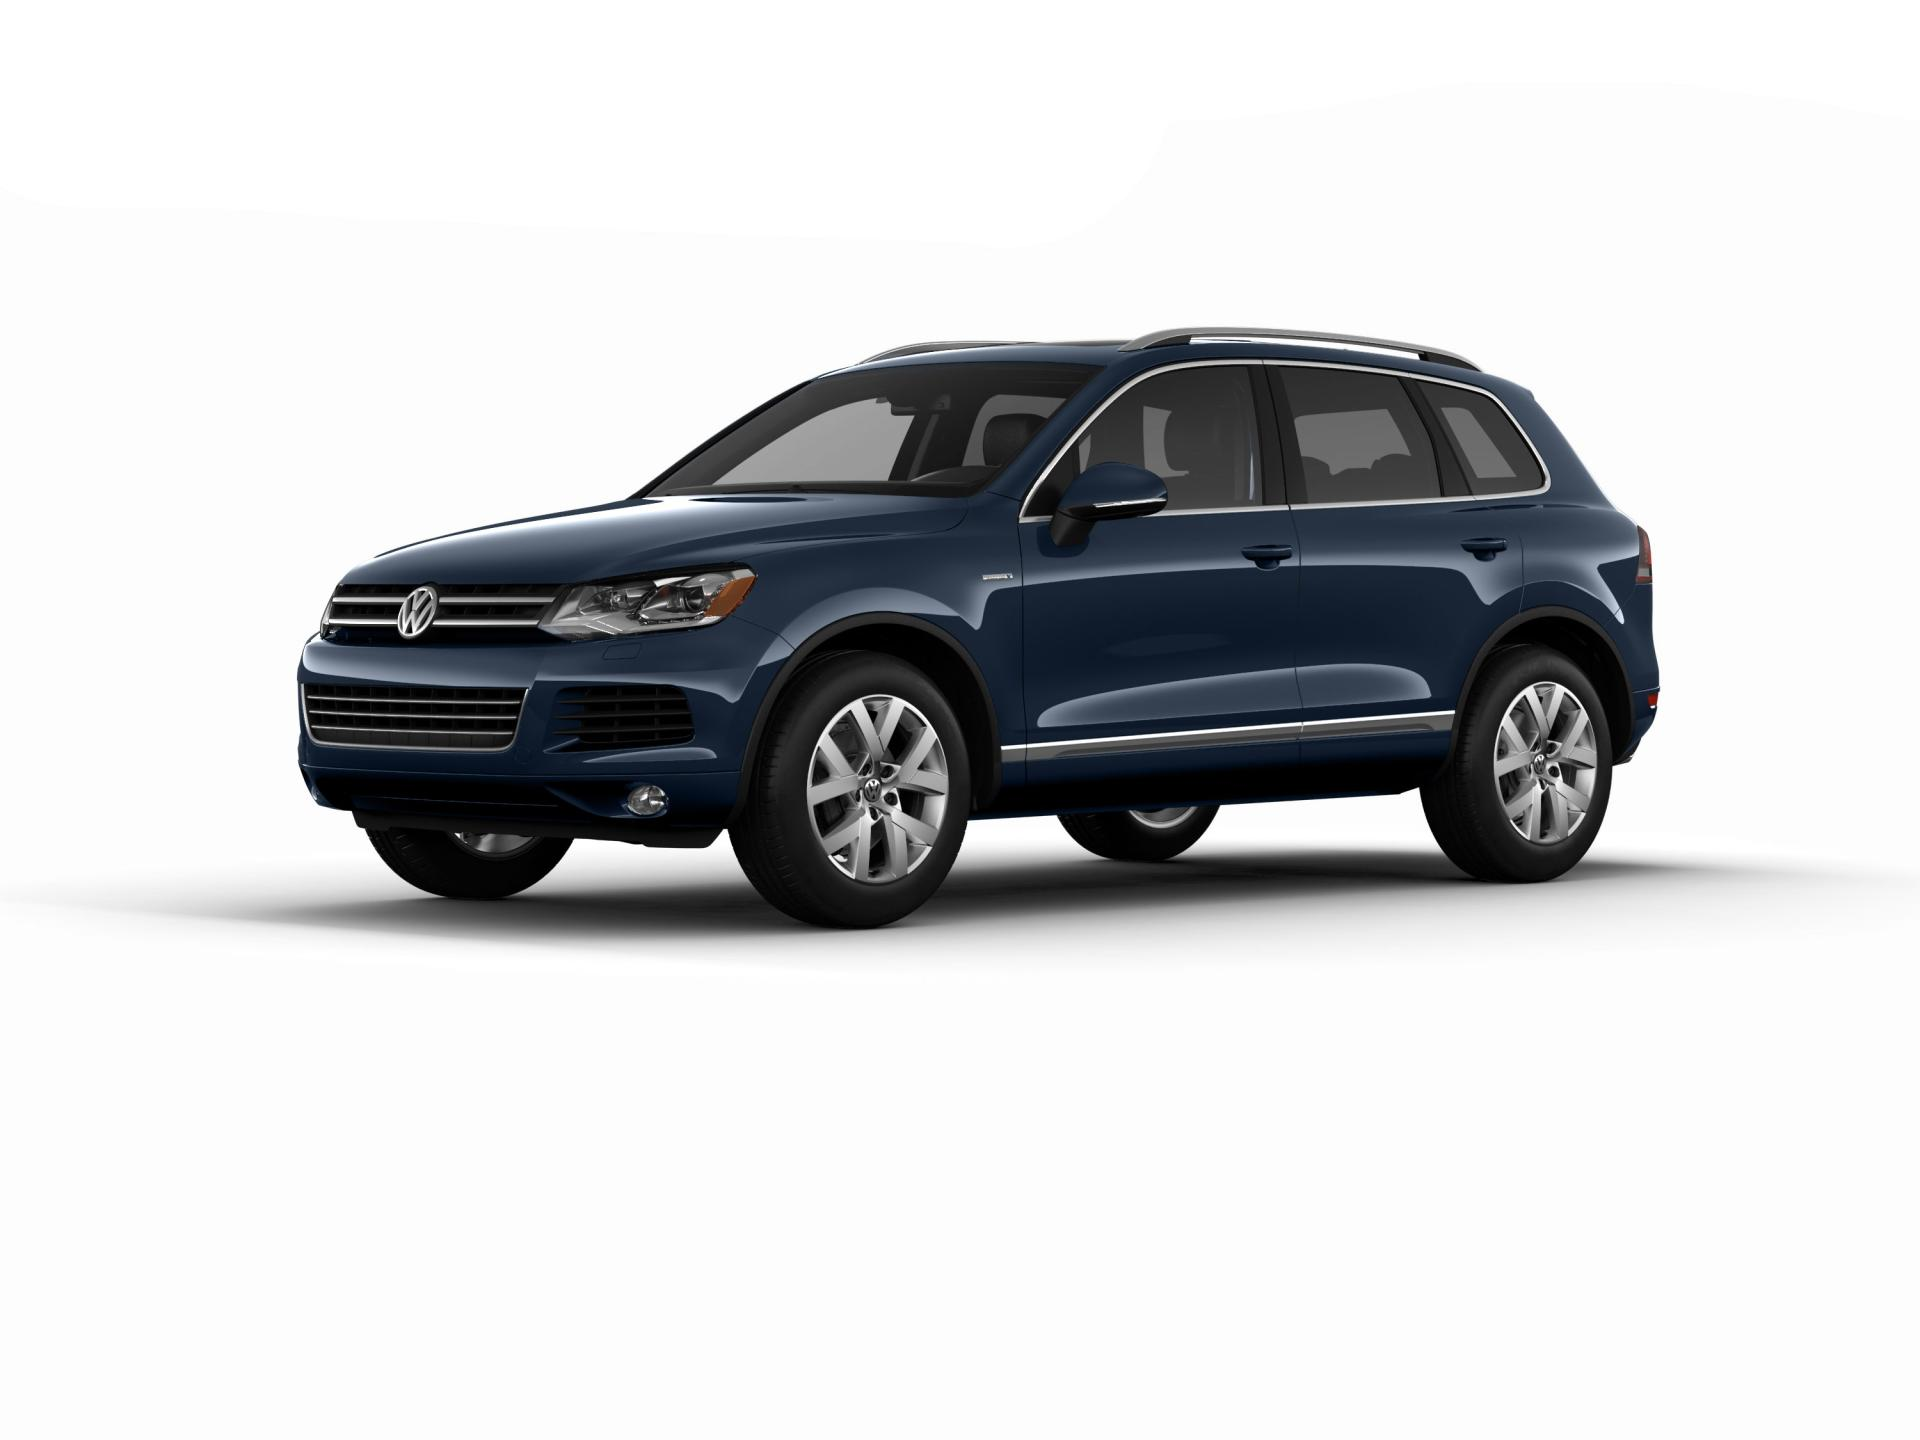 2014 volkswagen touareg x special edition technical specifications and data engine dimensions. Black Bedroom Furniture Sets. Home Design Ideas